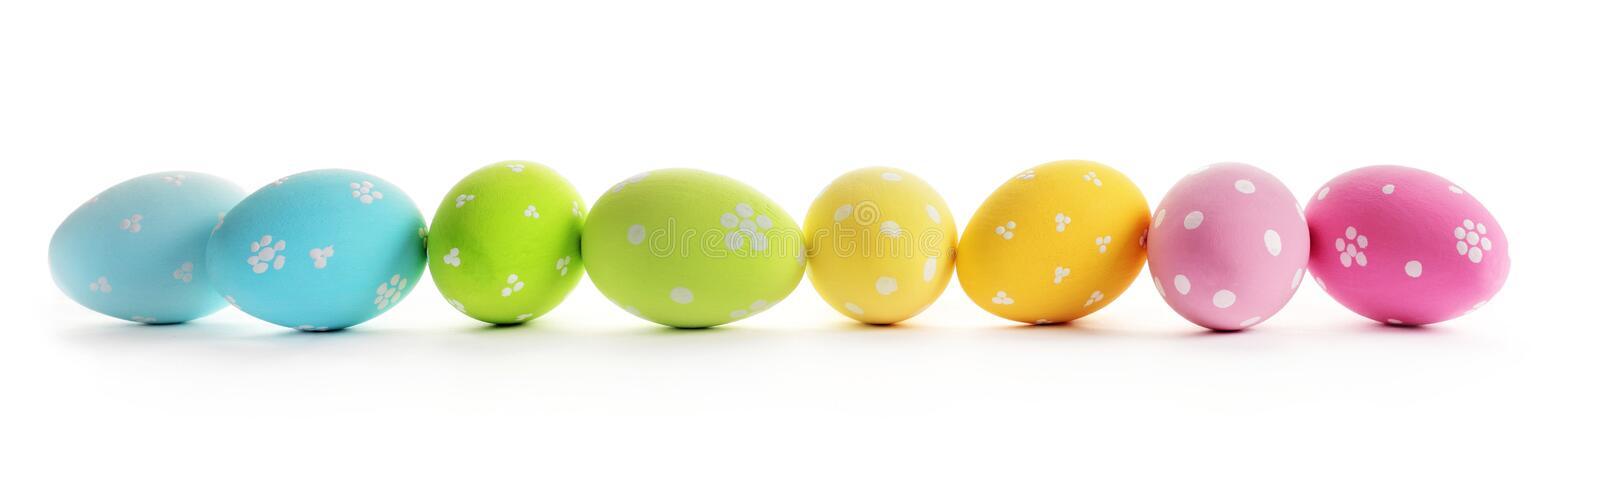 Colorful easter eggs isolated on white background royalty free stock photos